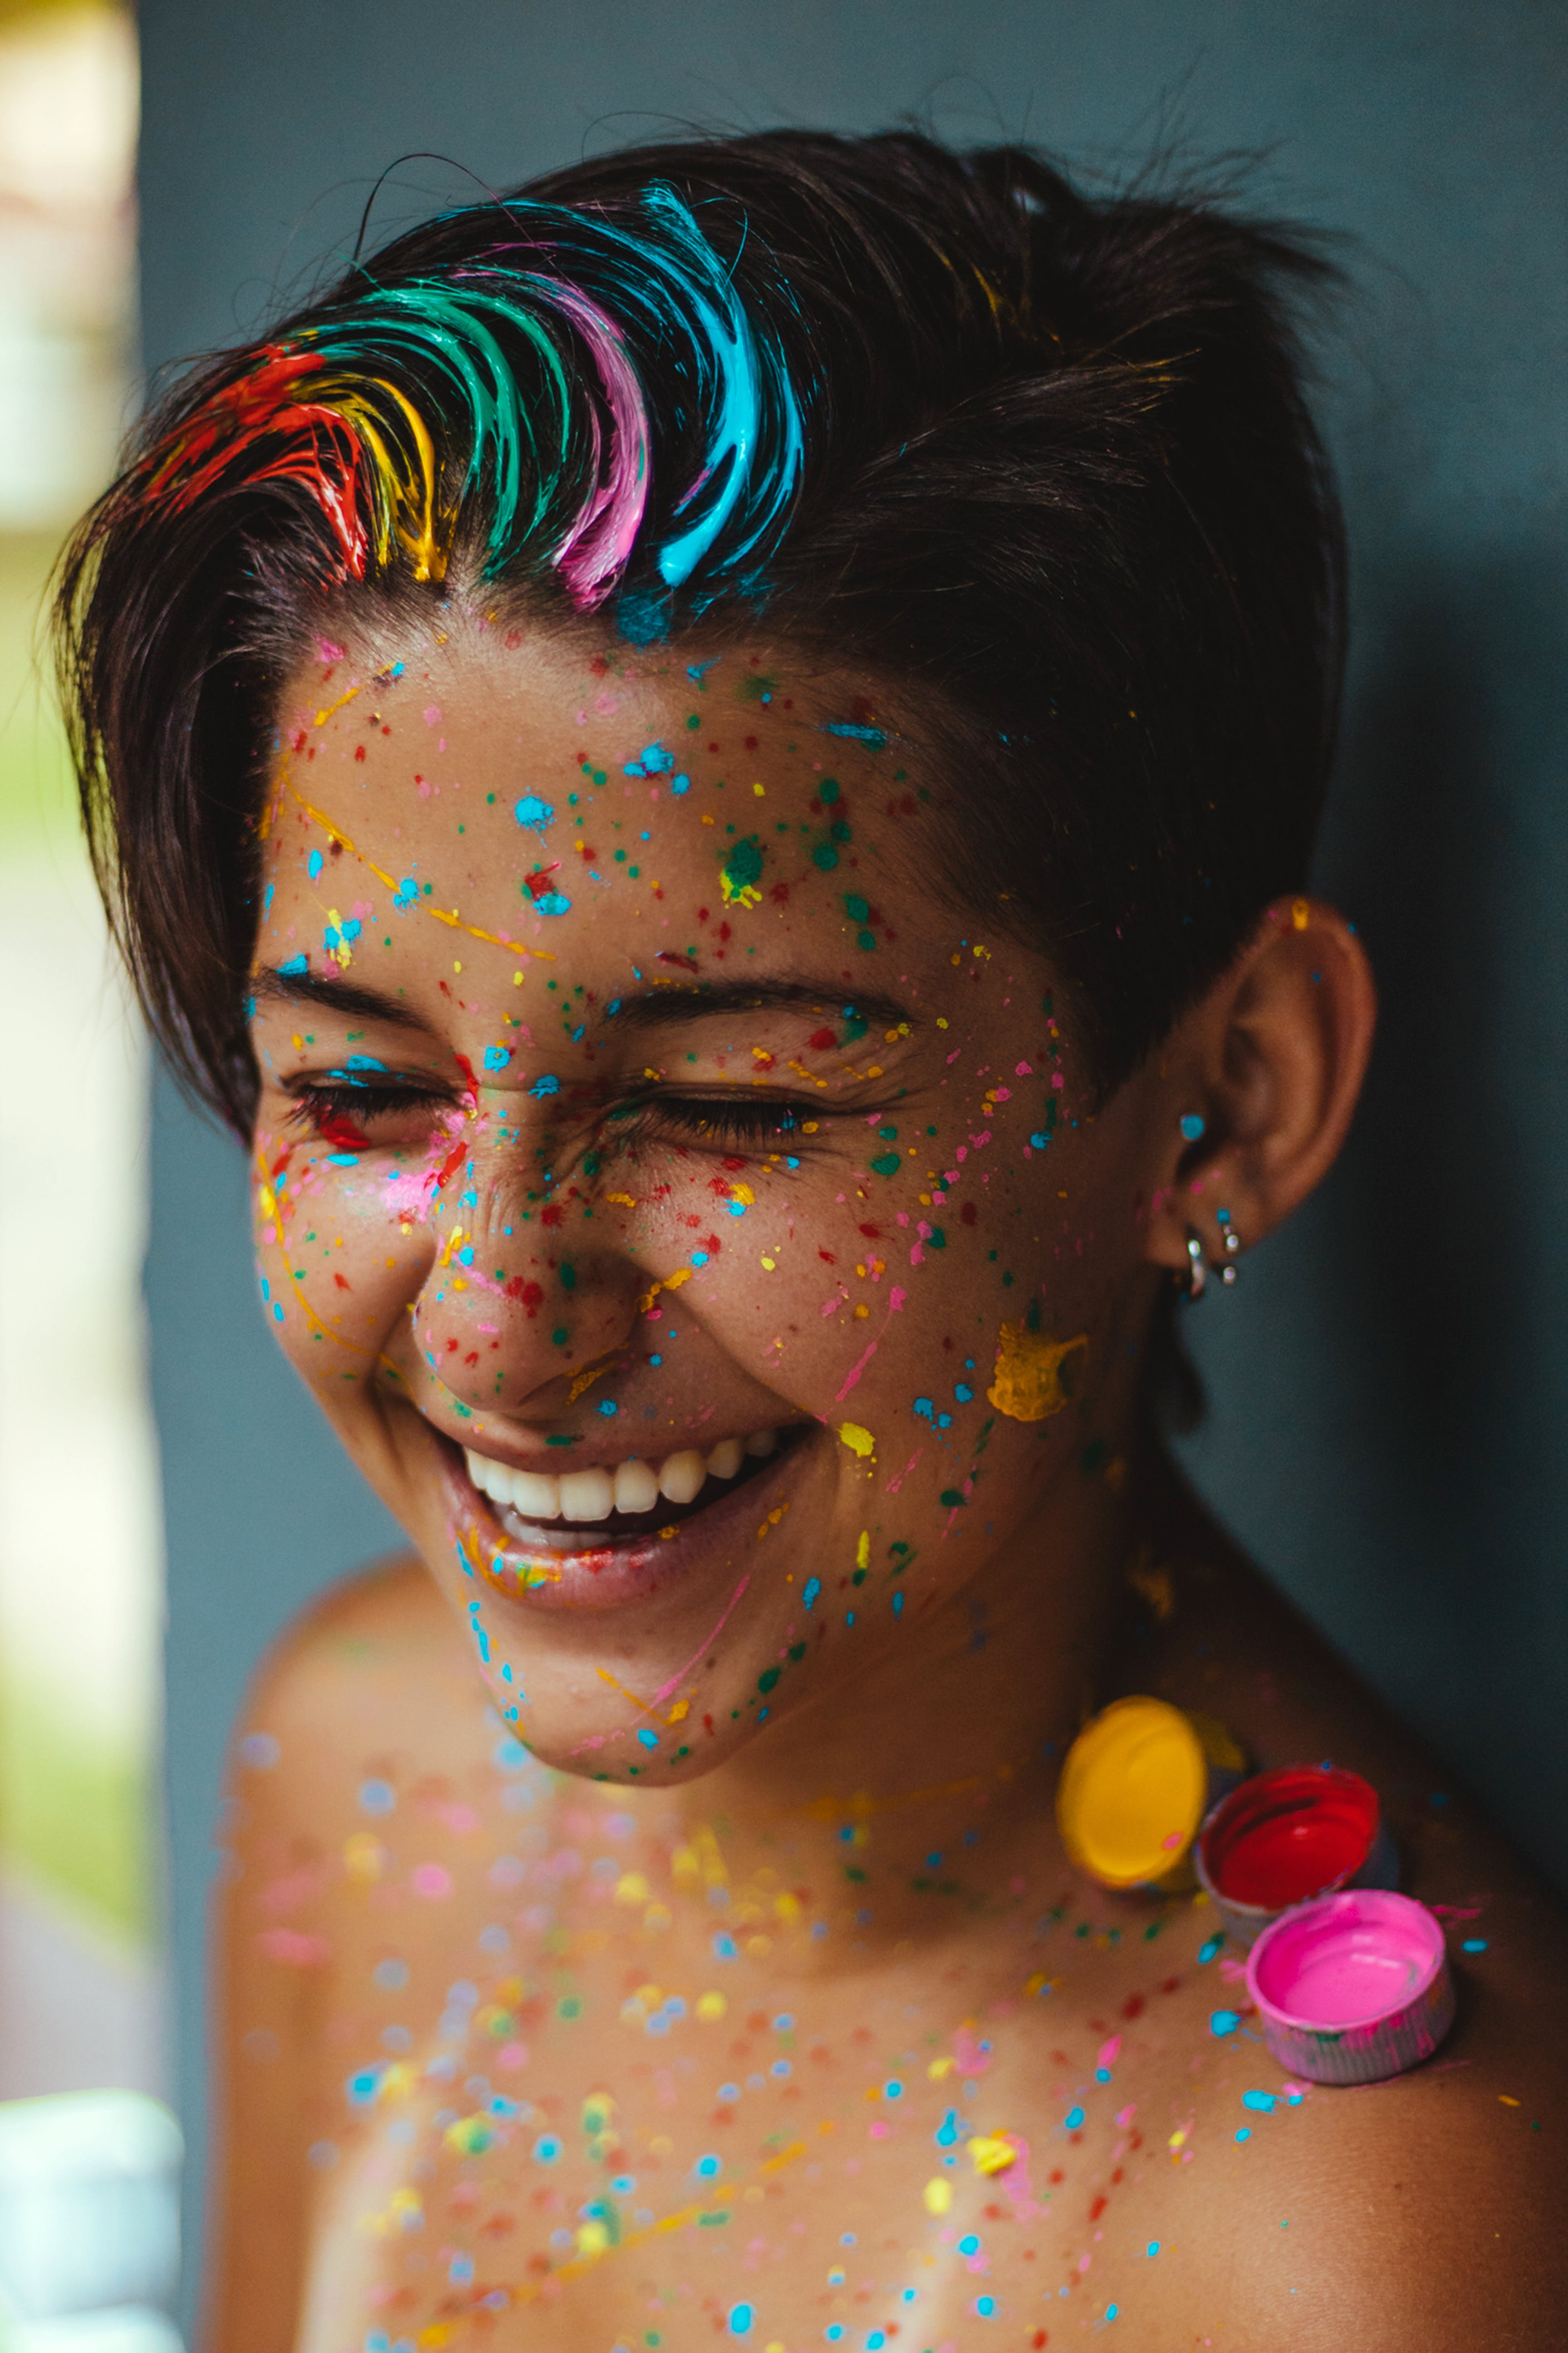 Shallow Focus Photo Of Woman Smiling With Face Paint